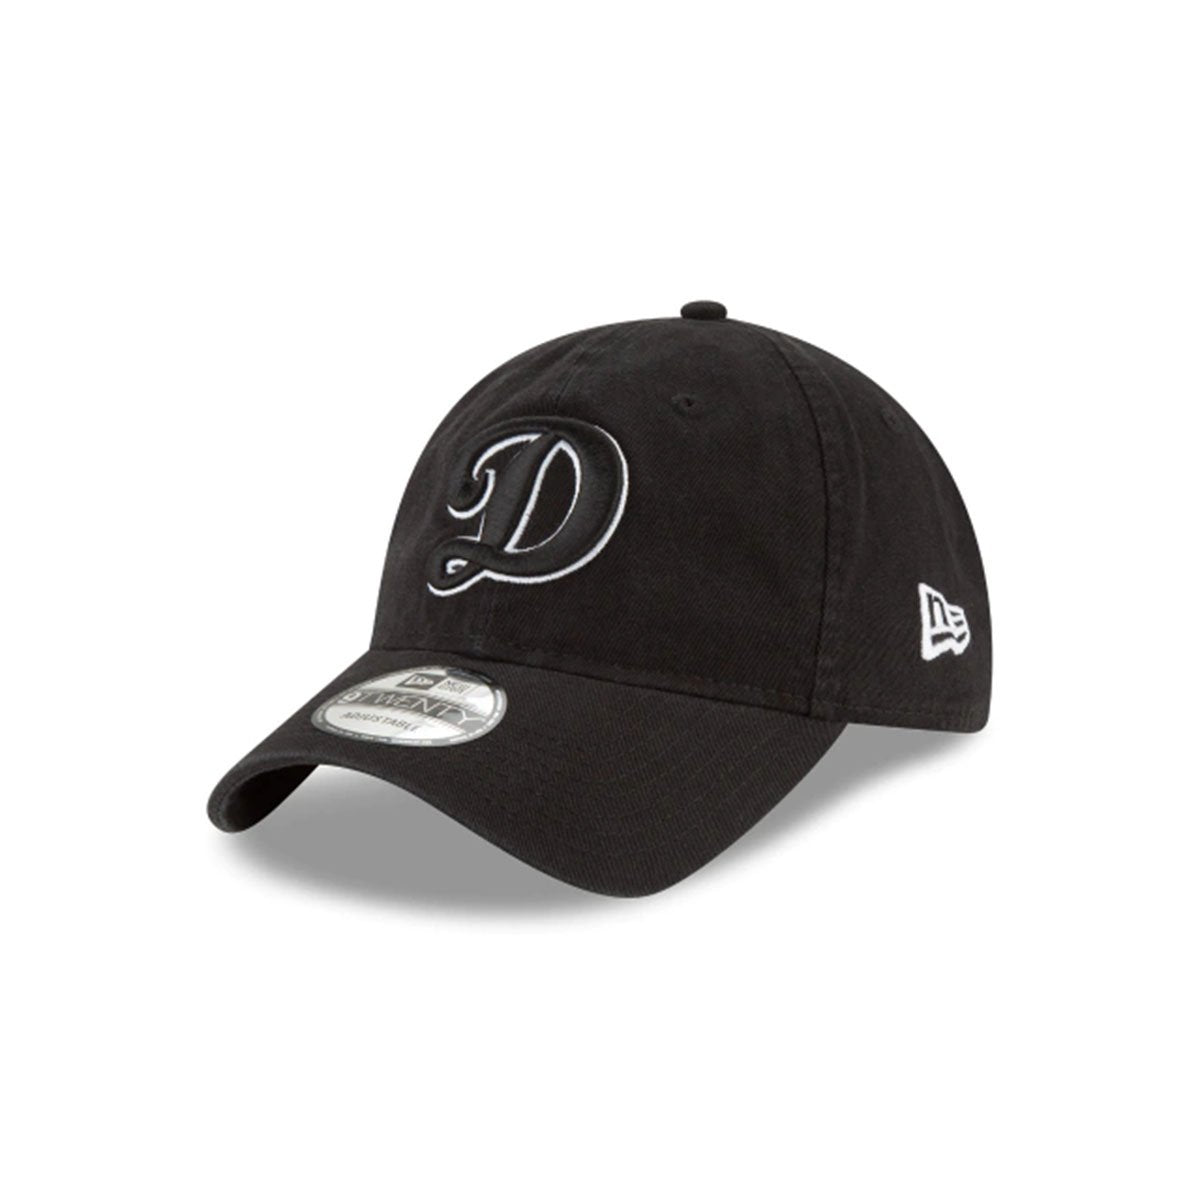 LOS ANGELES DODGERS 9TWENTY ADJUSTABLE BLACK/WHITE